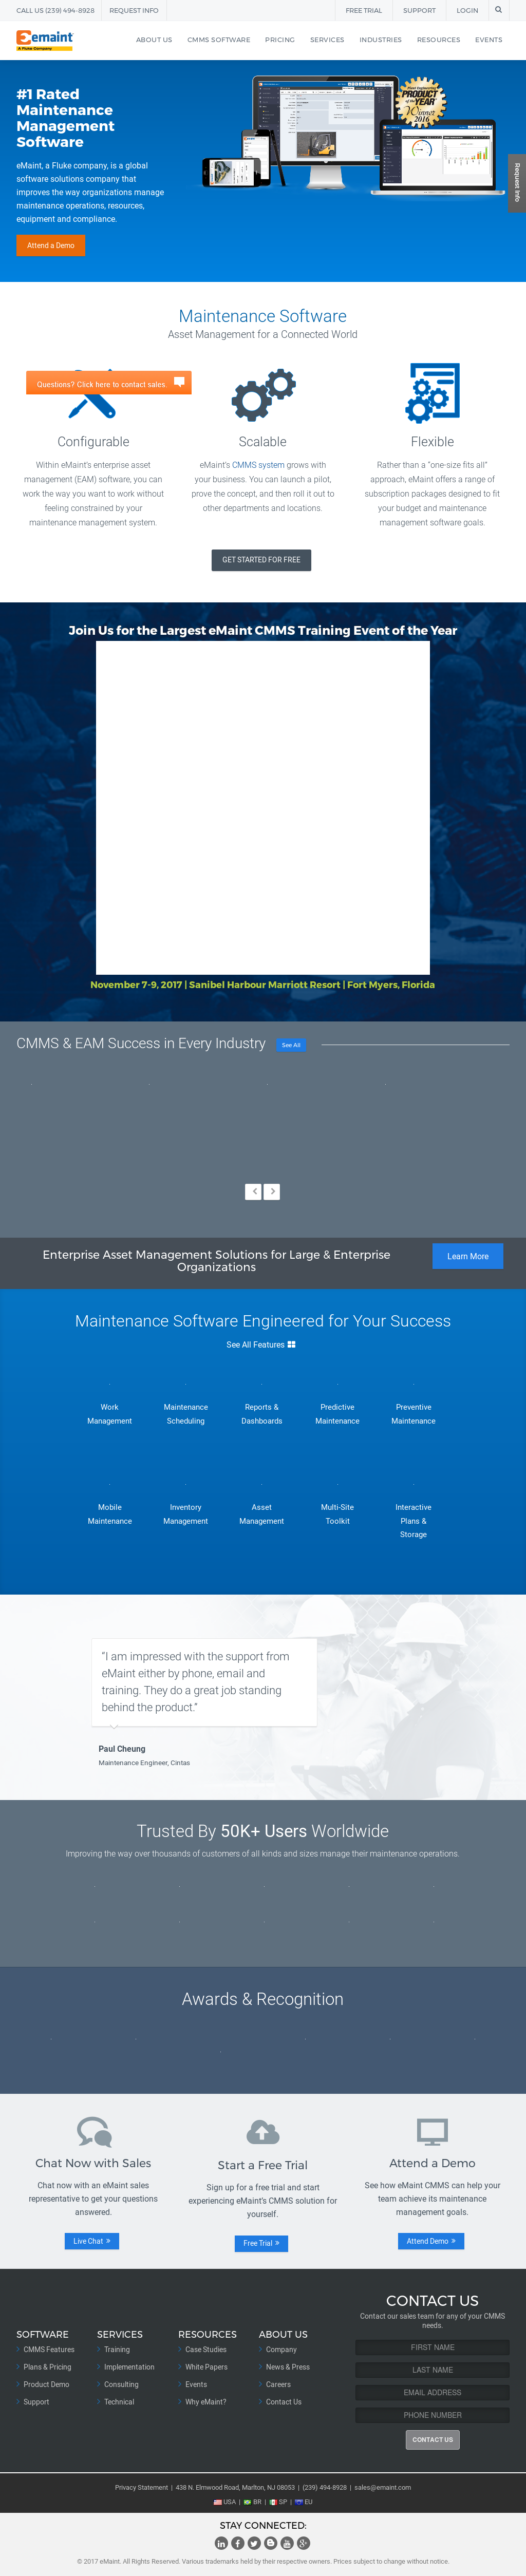 eMaint Competitors, Revenue and Employees - Owler Company